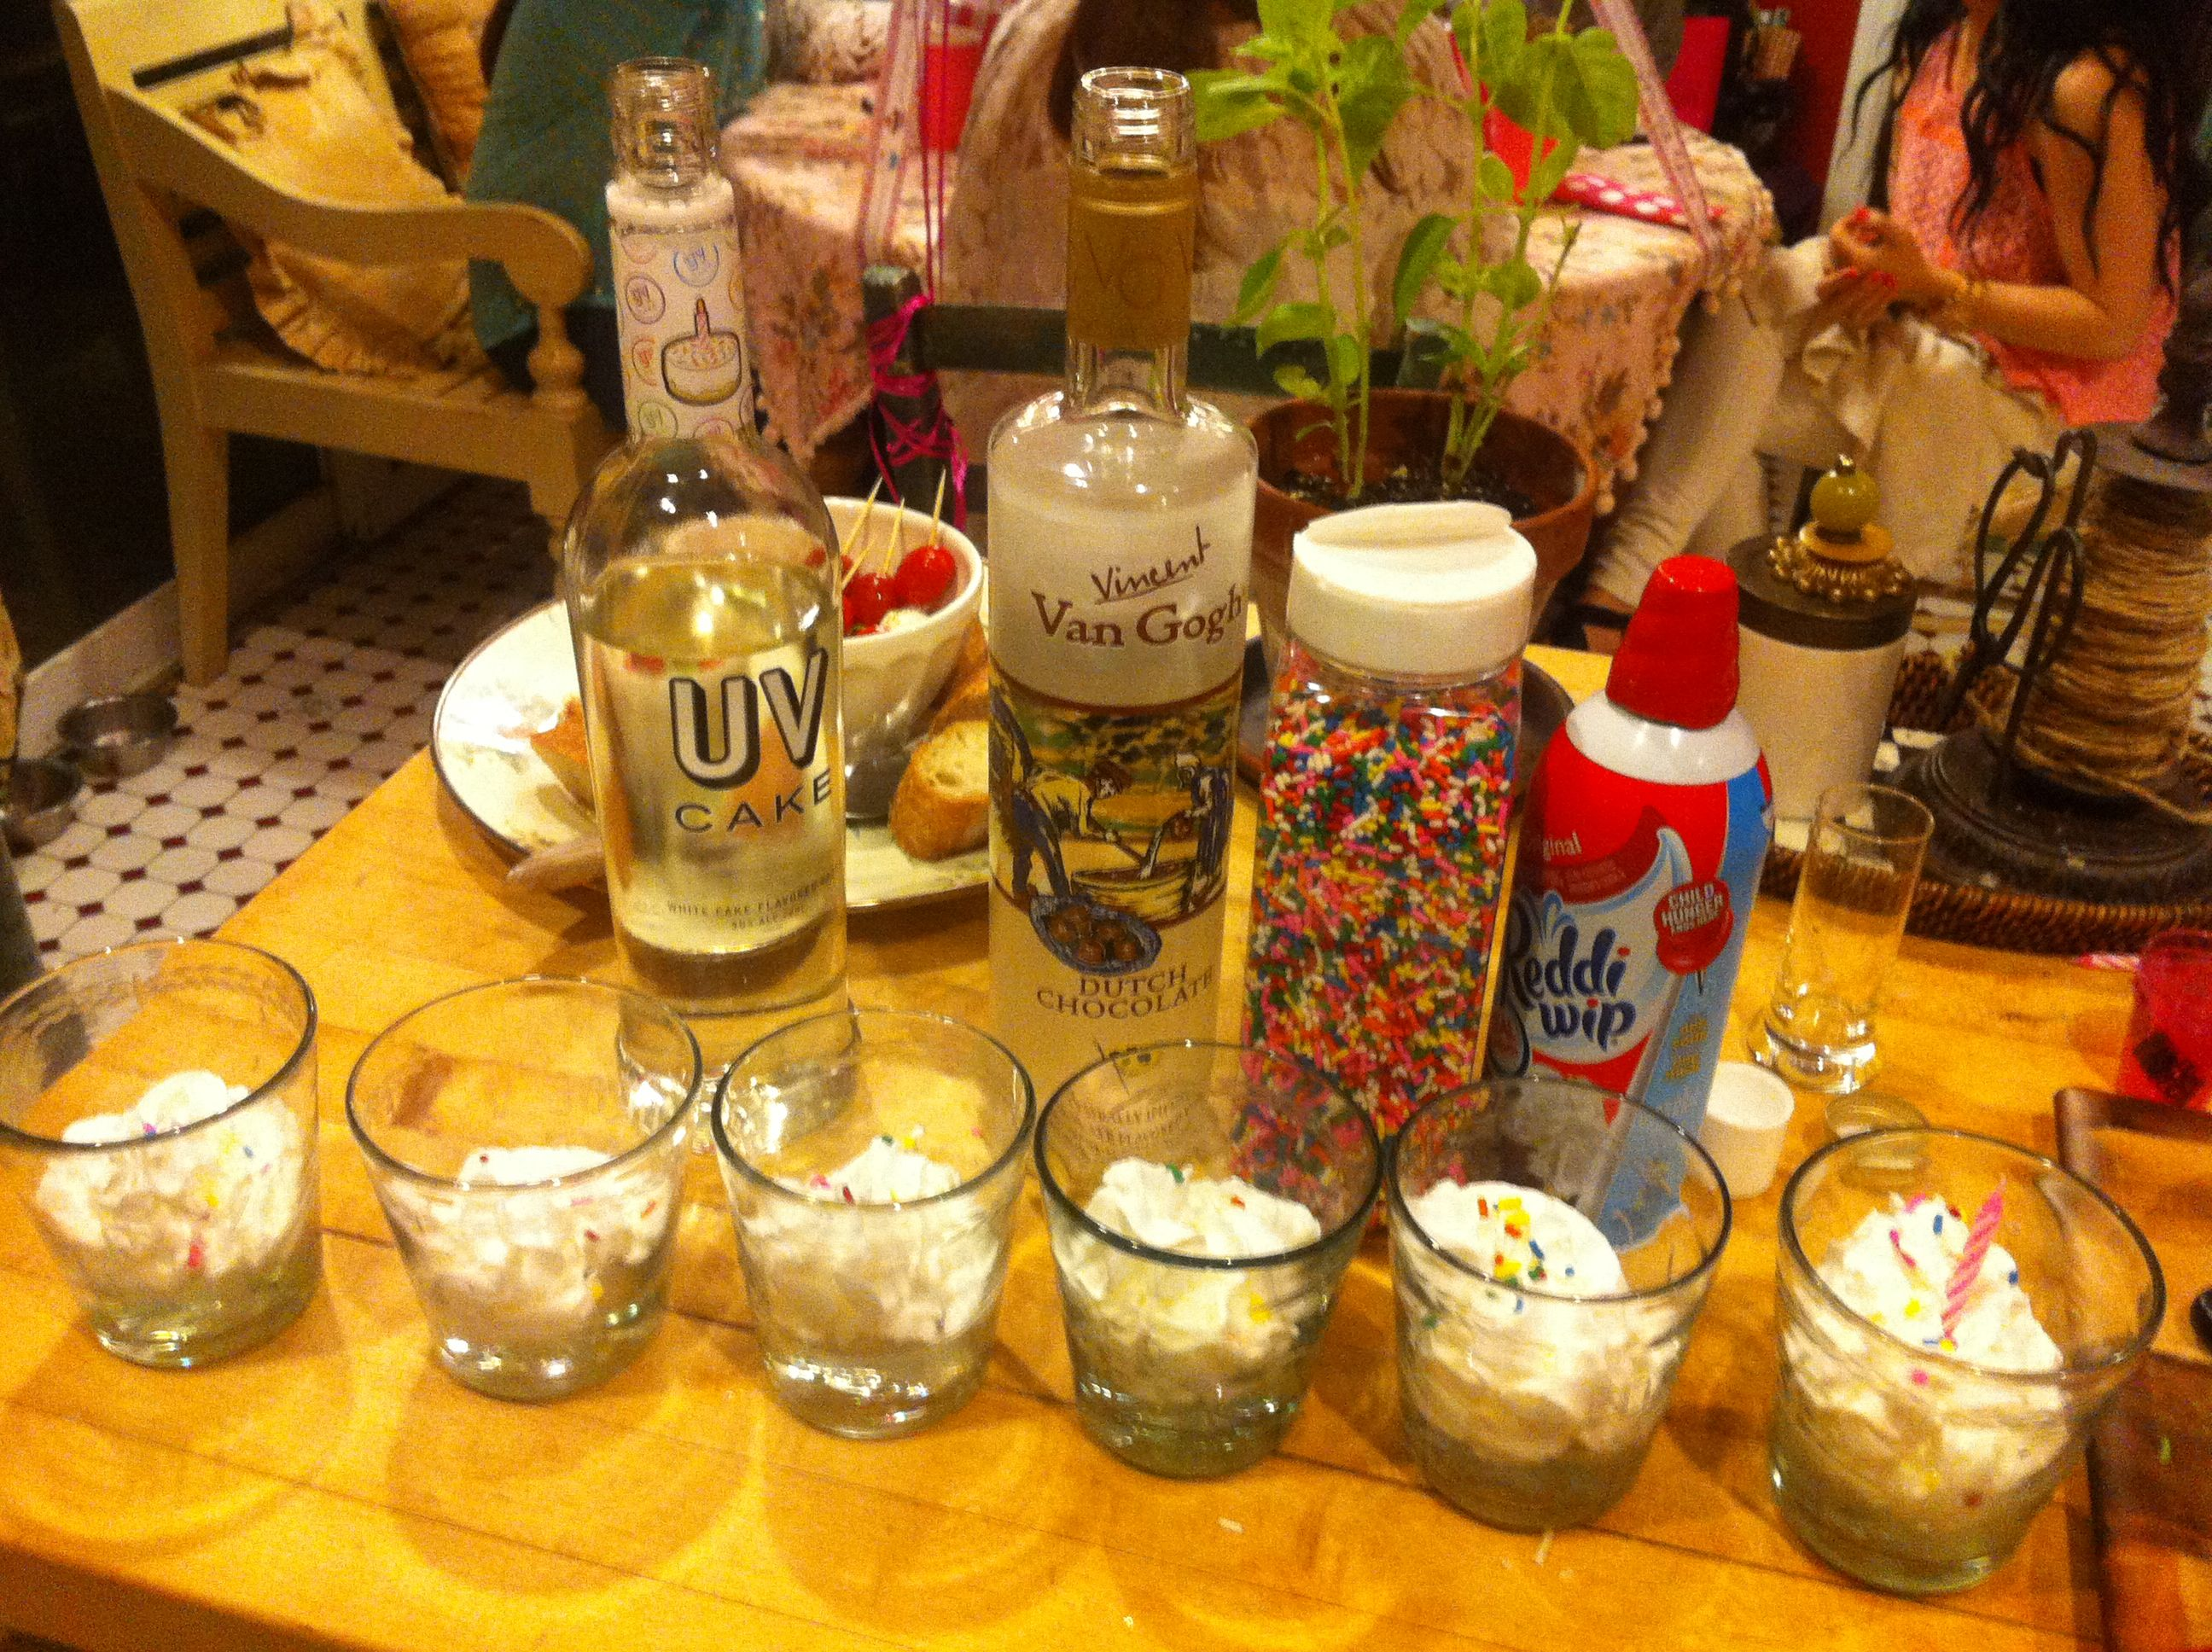 Birthday cake shots 1 part cake vodka 1 part chocolate vodka